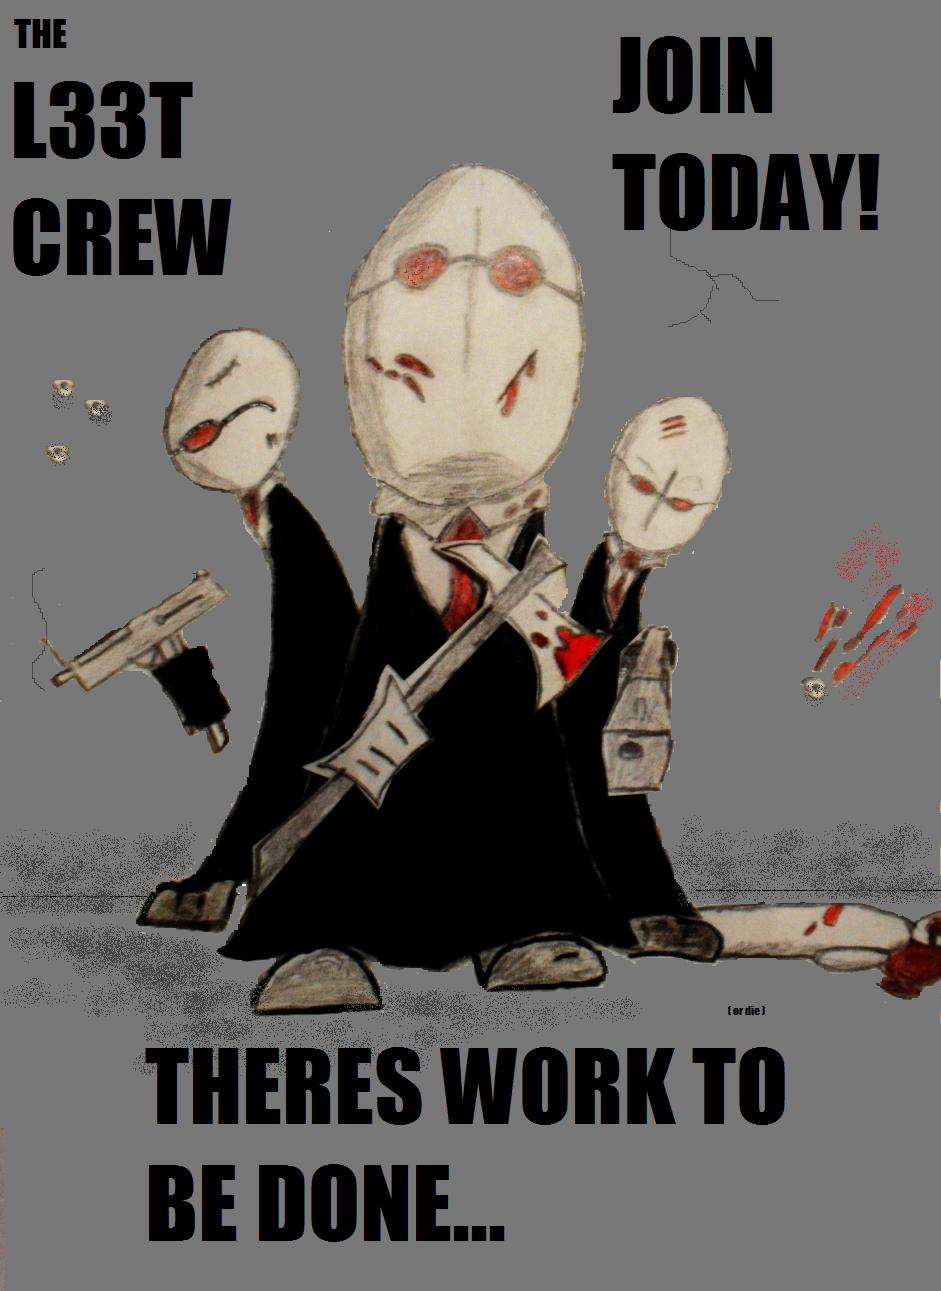 L33T crew recruiting poster